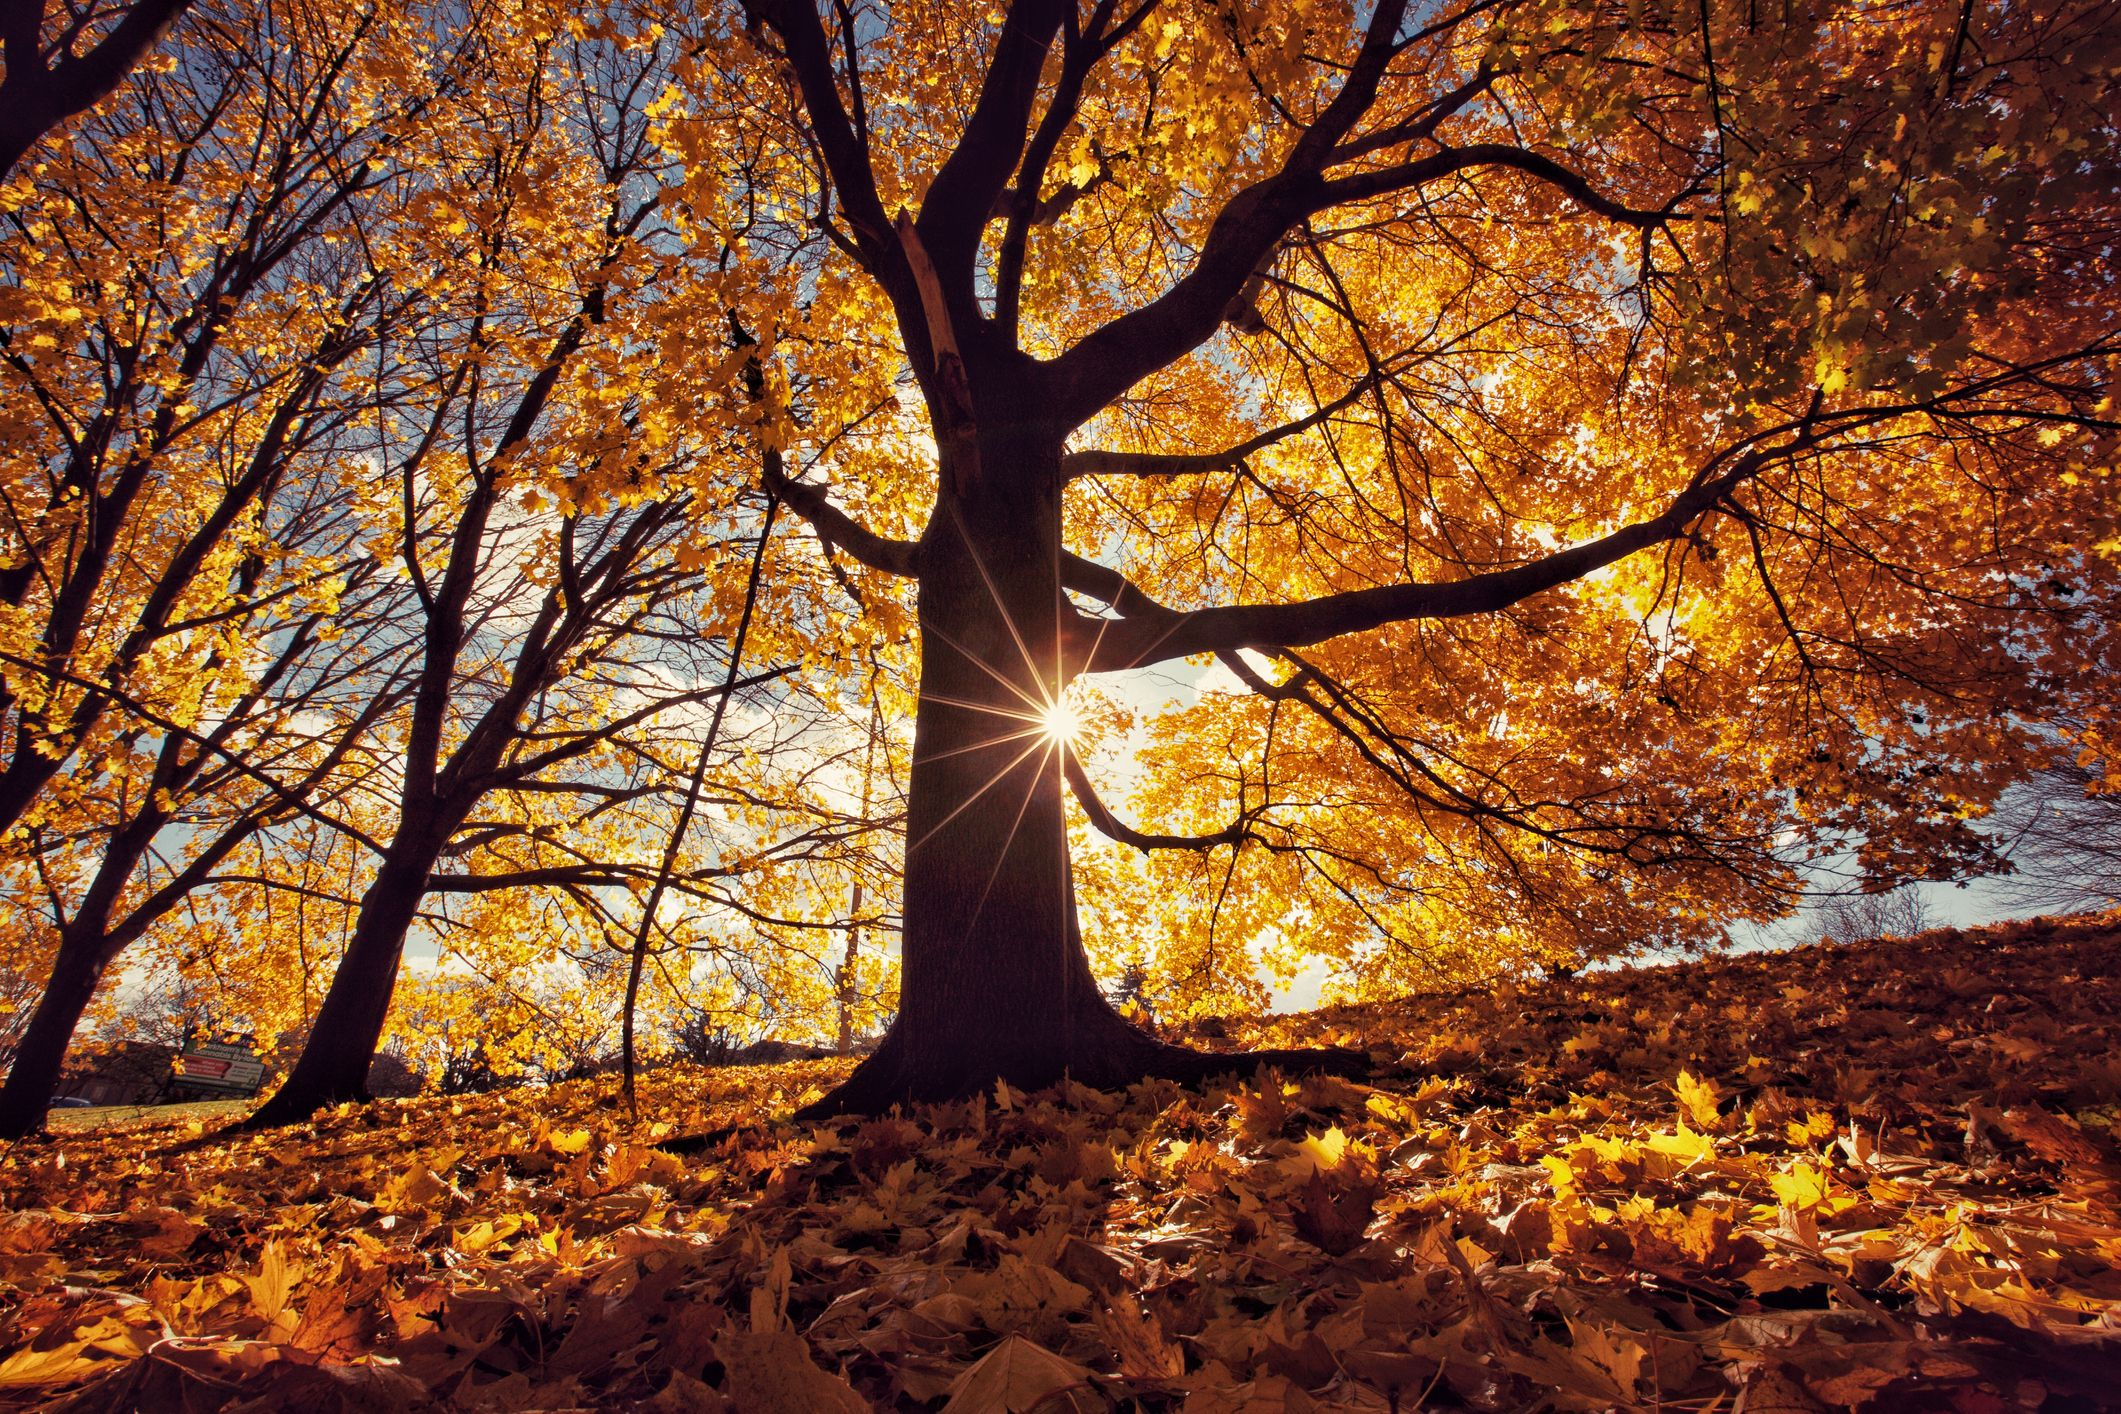 14 Best Autumn Poems - Classic Poems About Fall